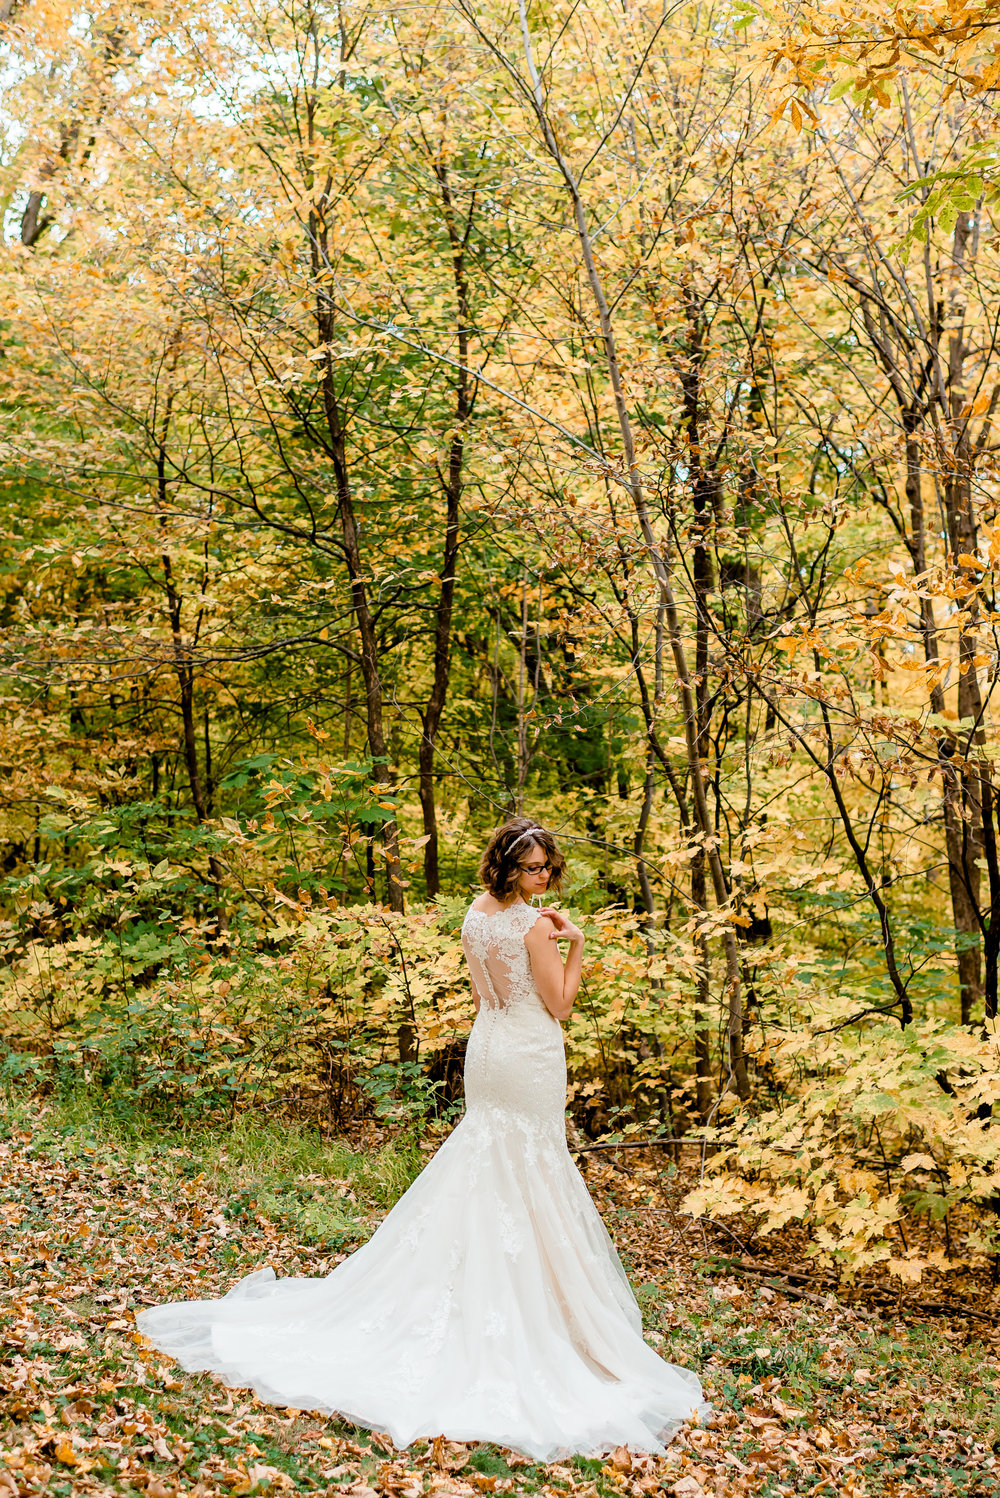 Beautiful Bride at MN Landscape Arboretum - Fall Colors Outdoor Wedding - MN Wedding Photographer